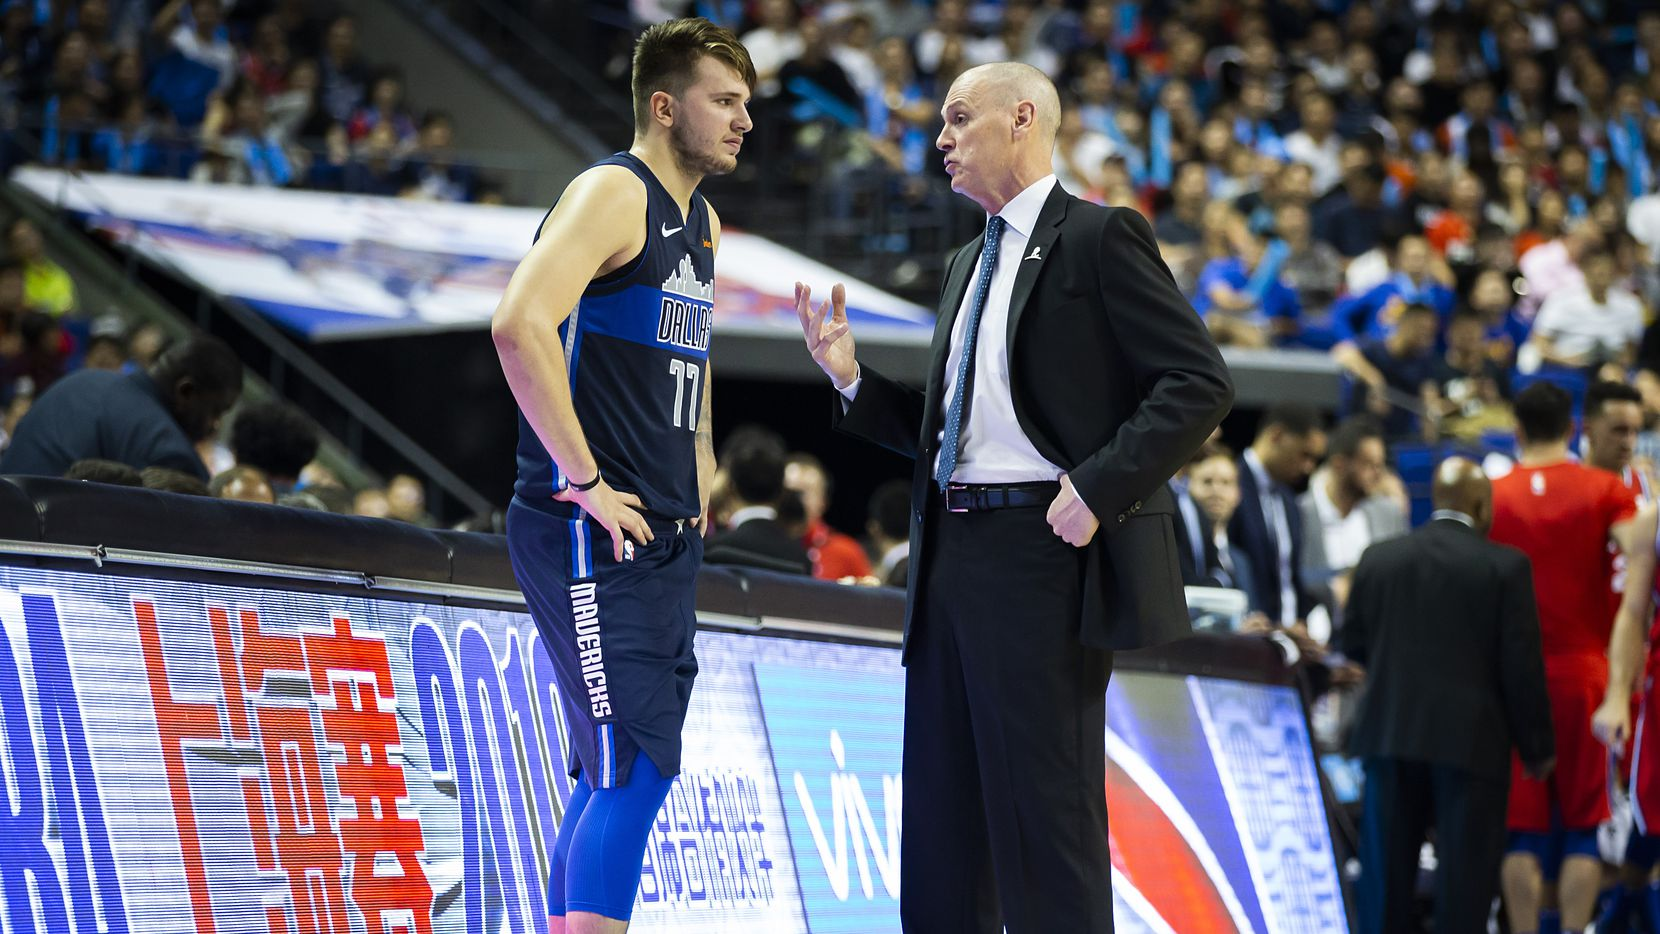 Dallas Mavericks guard Luka Doncic (77) talks with head coach Rick Carlisle before checking into the game after a timeout during the second half of an NBA China Games 2018 preseason basketball game against the Philadelphia 76ers at Mercedes-Benz Arena on Friday, Oct. 5, 2018, in Shanghai.